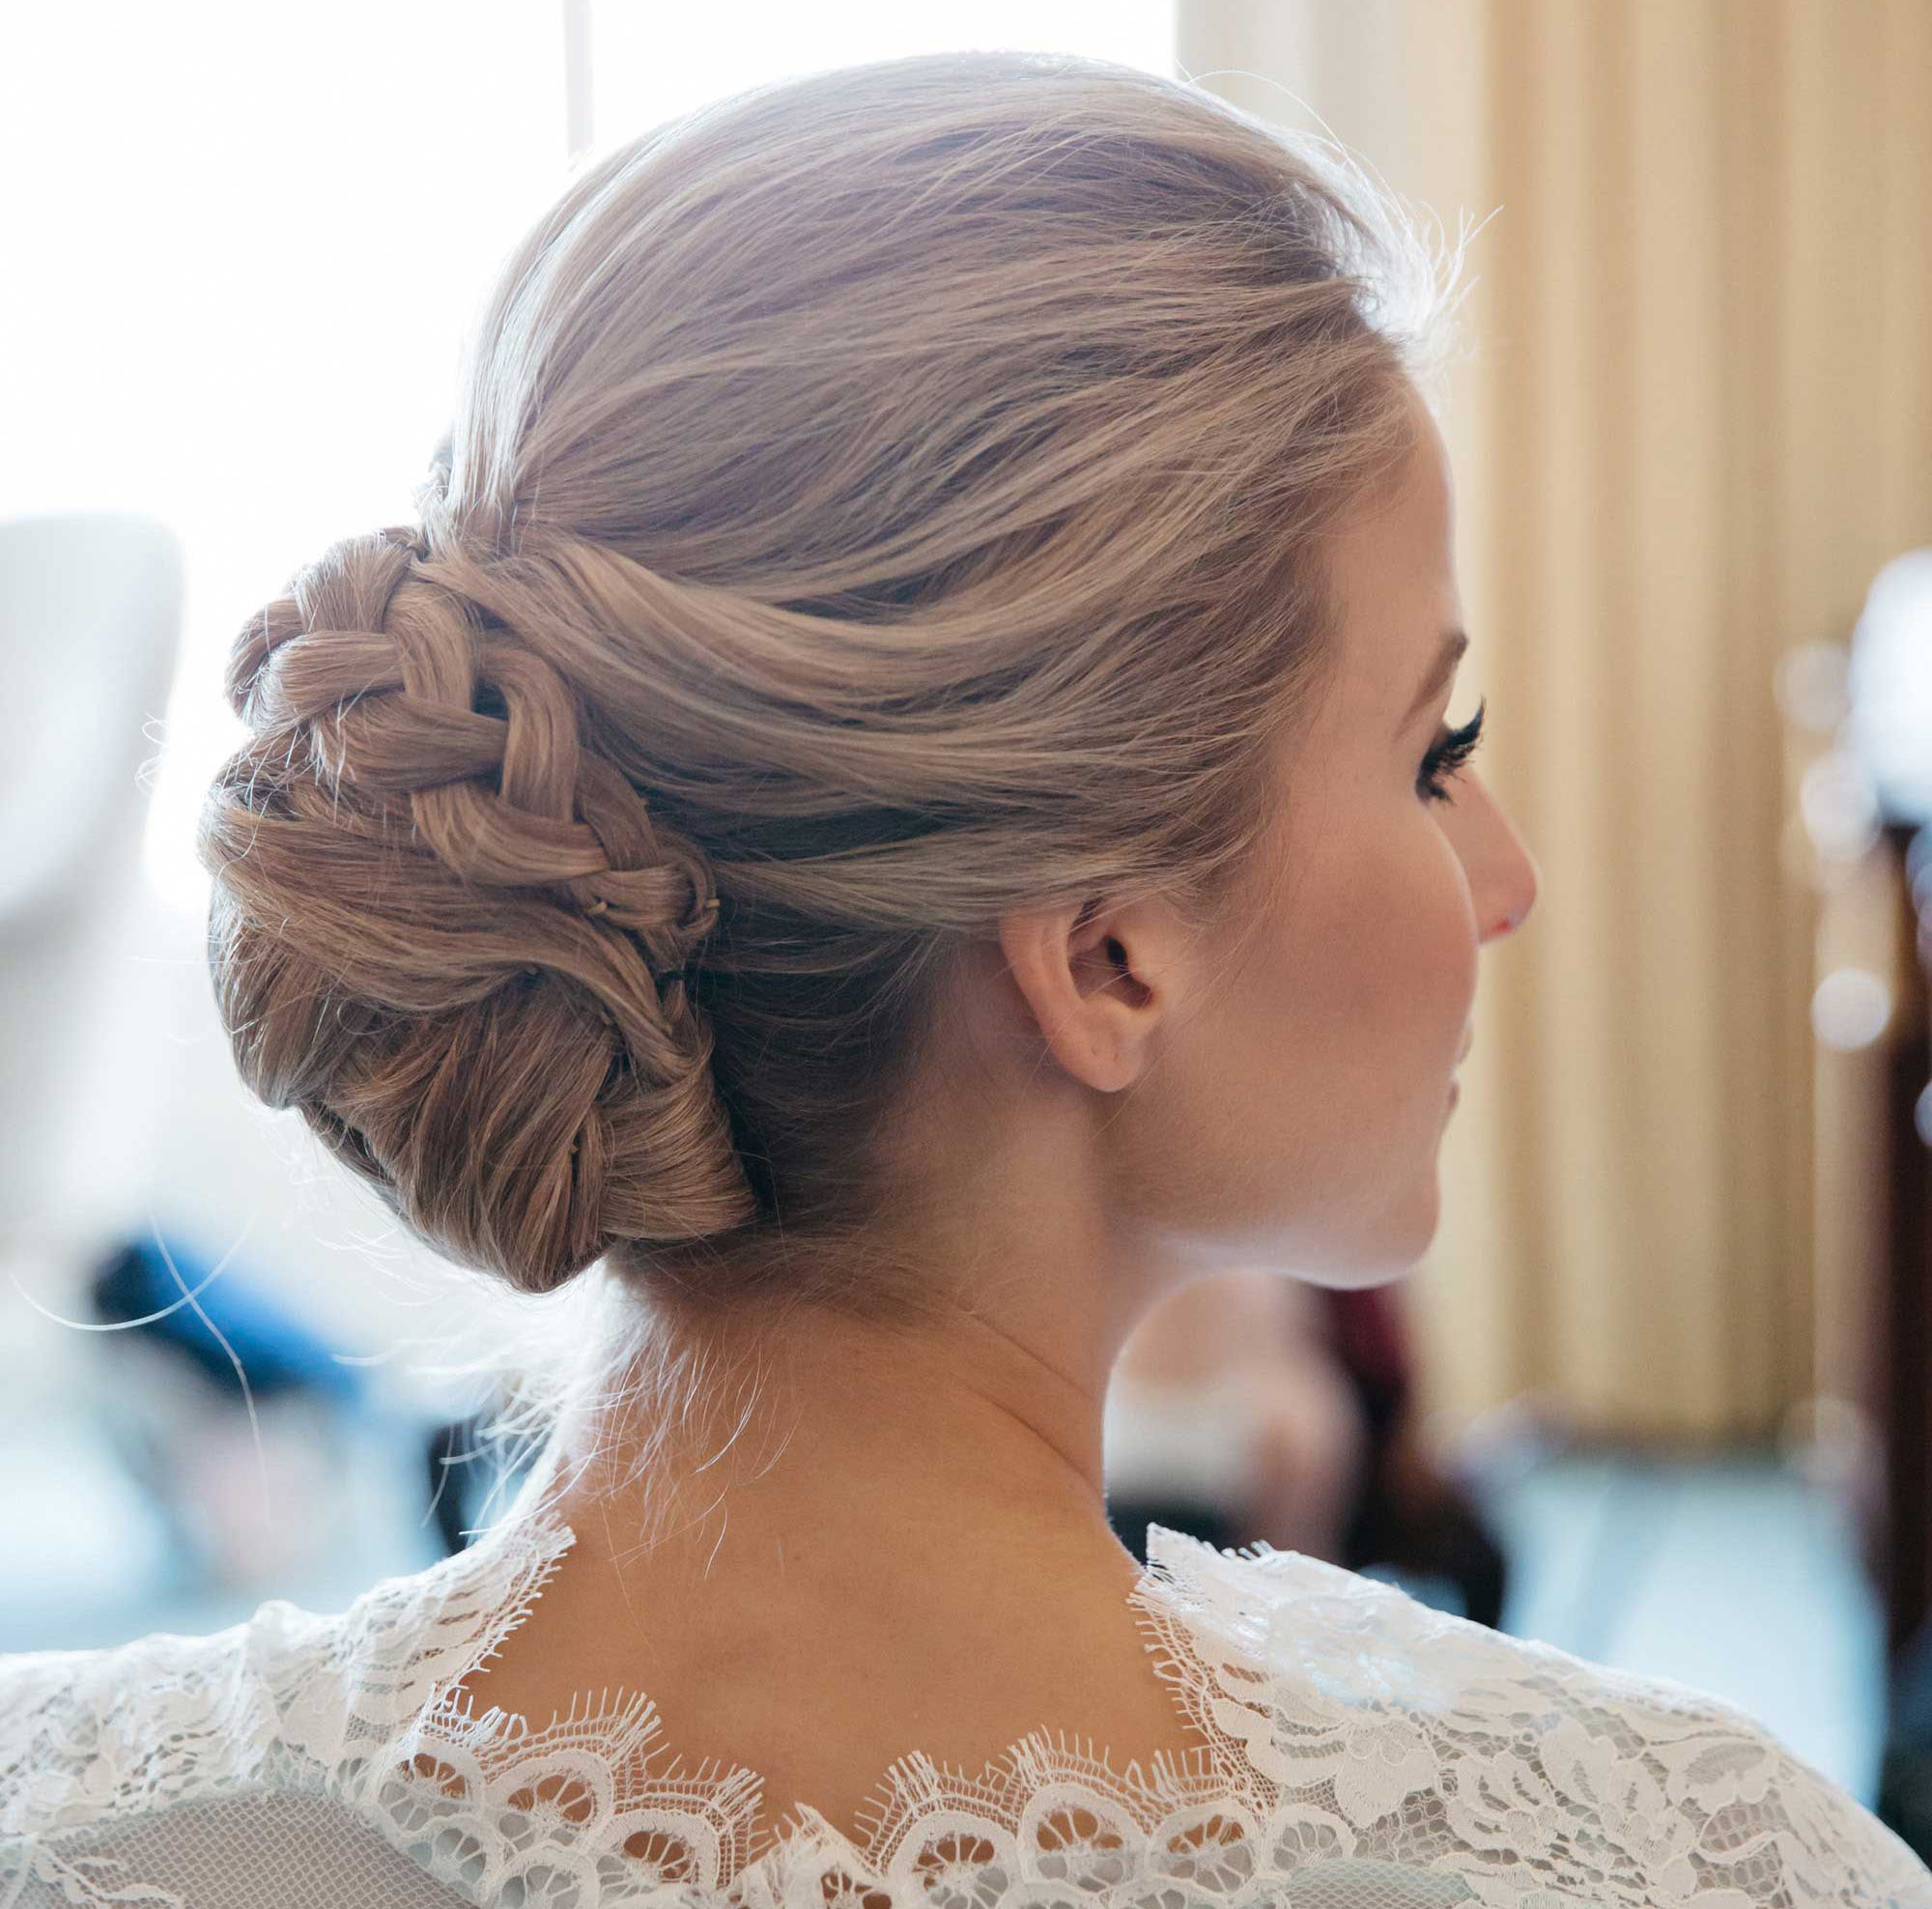 Braided Wedding Hair: Braided Hairstyles: 5 Ideas For Your Wedding Look